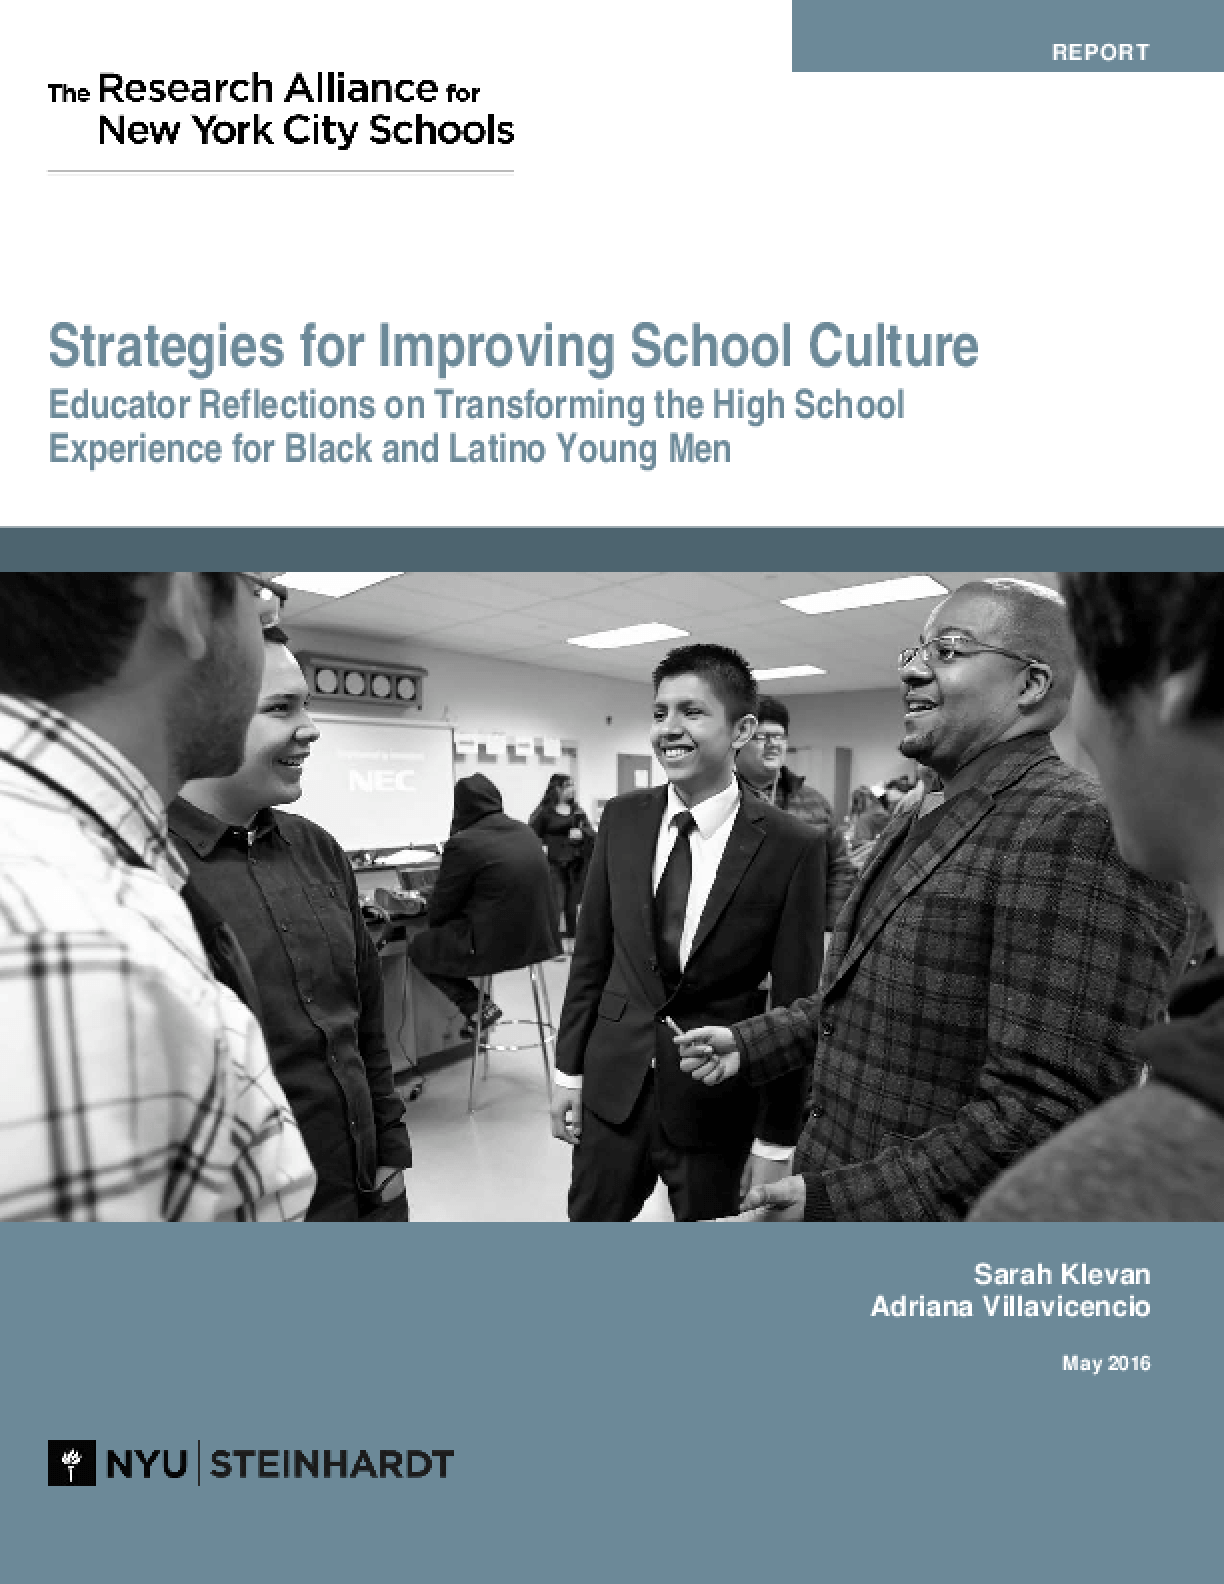 Strategies for Improving School Culture: Educator Reflections on Transforming the High School Experience for Black and Latino Young Men